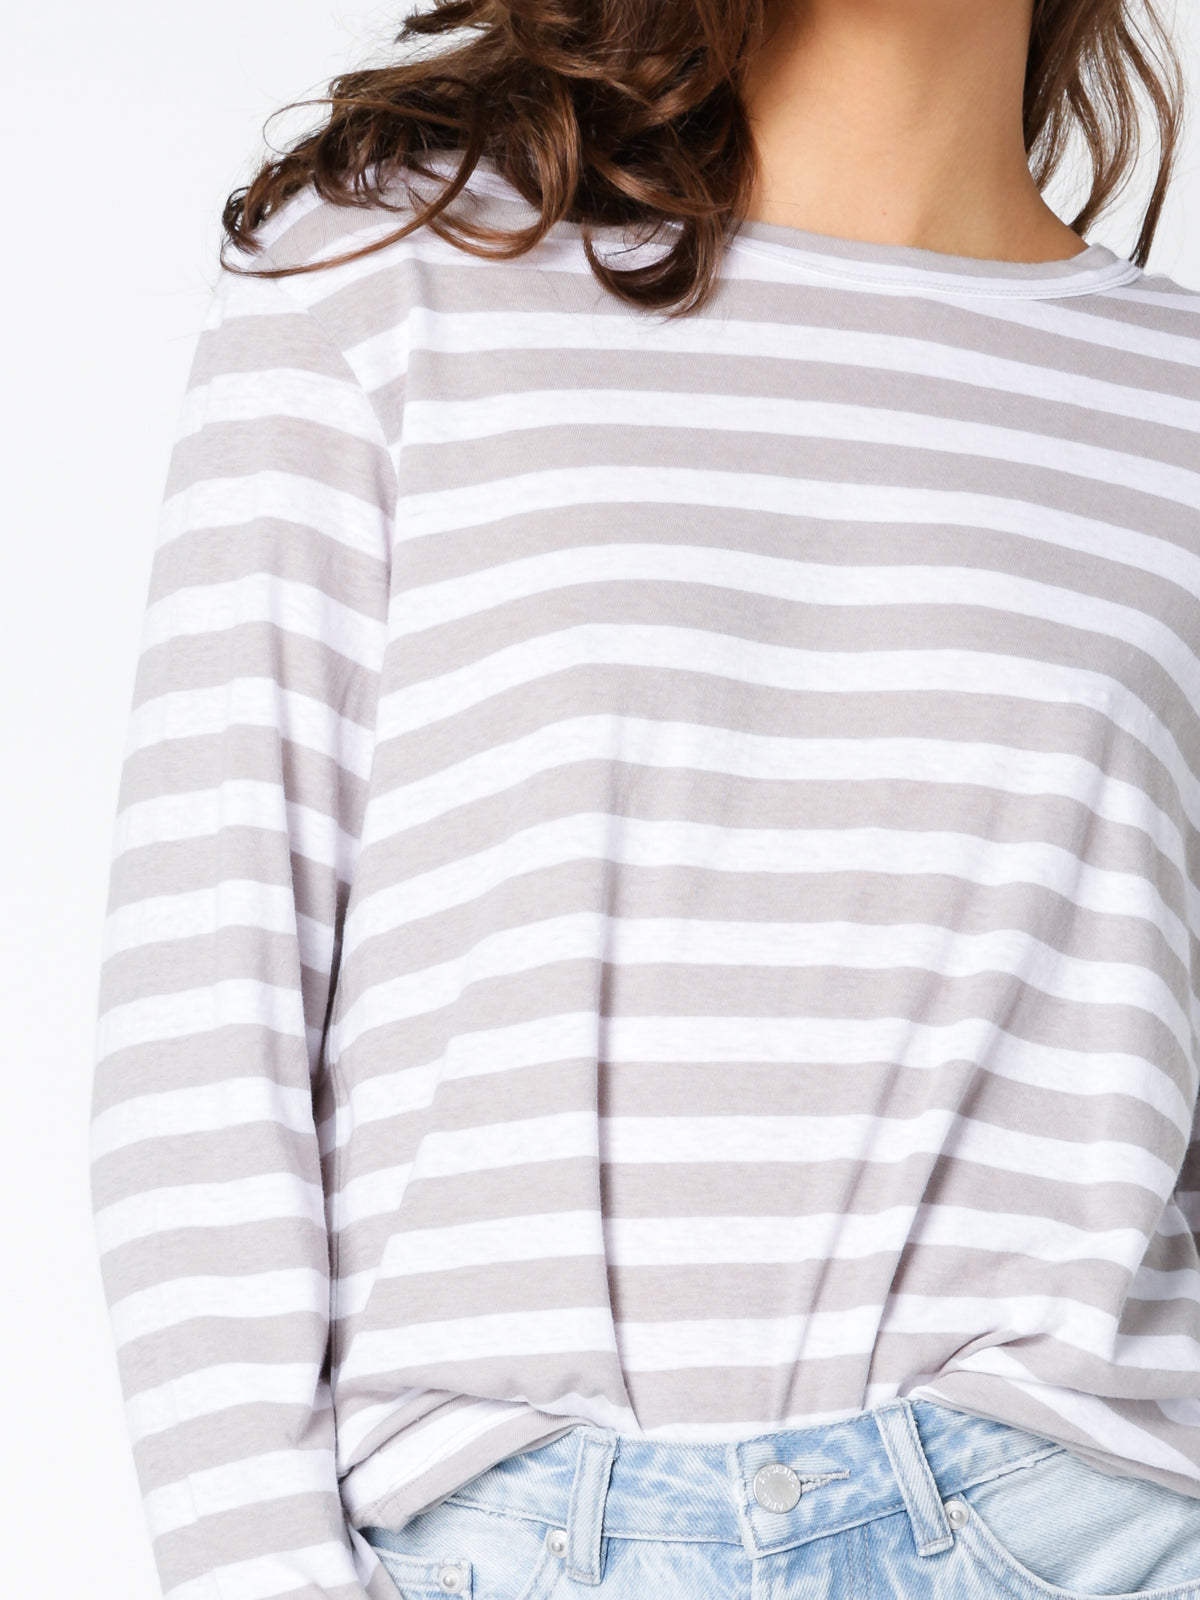 Bay Long Sleeve T-Shirt in White and Grey Stripe